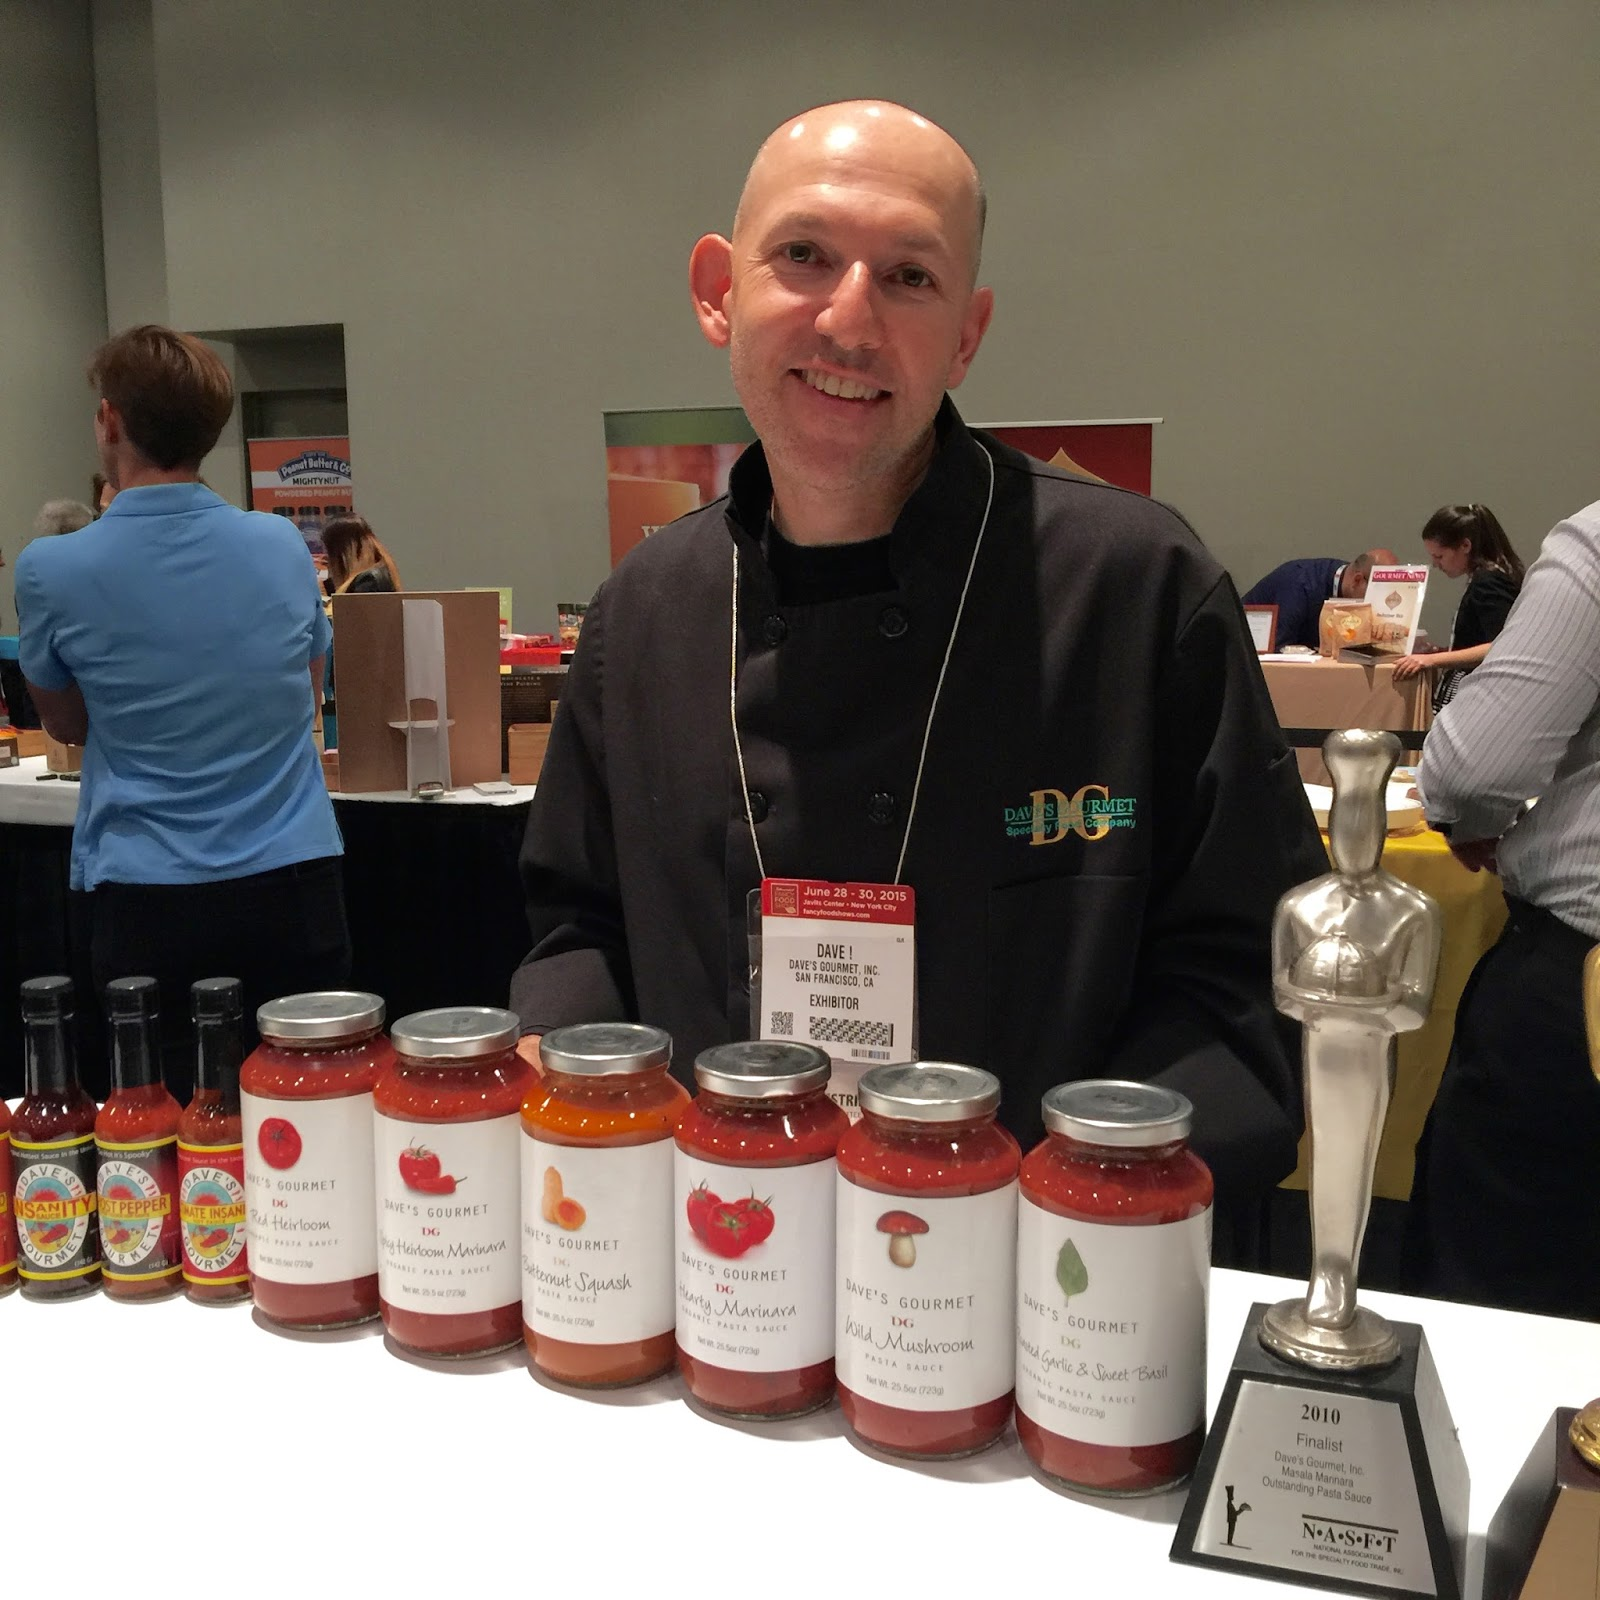 Dave Hirschkop, Founder and CEO of Dave's Gourmet, displaying his sauces at the Specialty Foods Show.